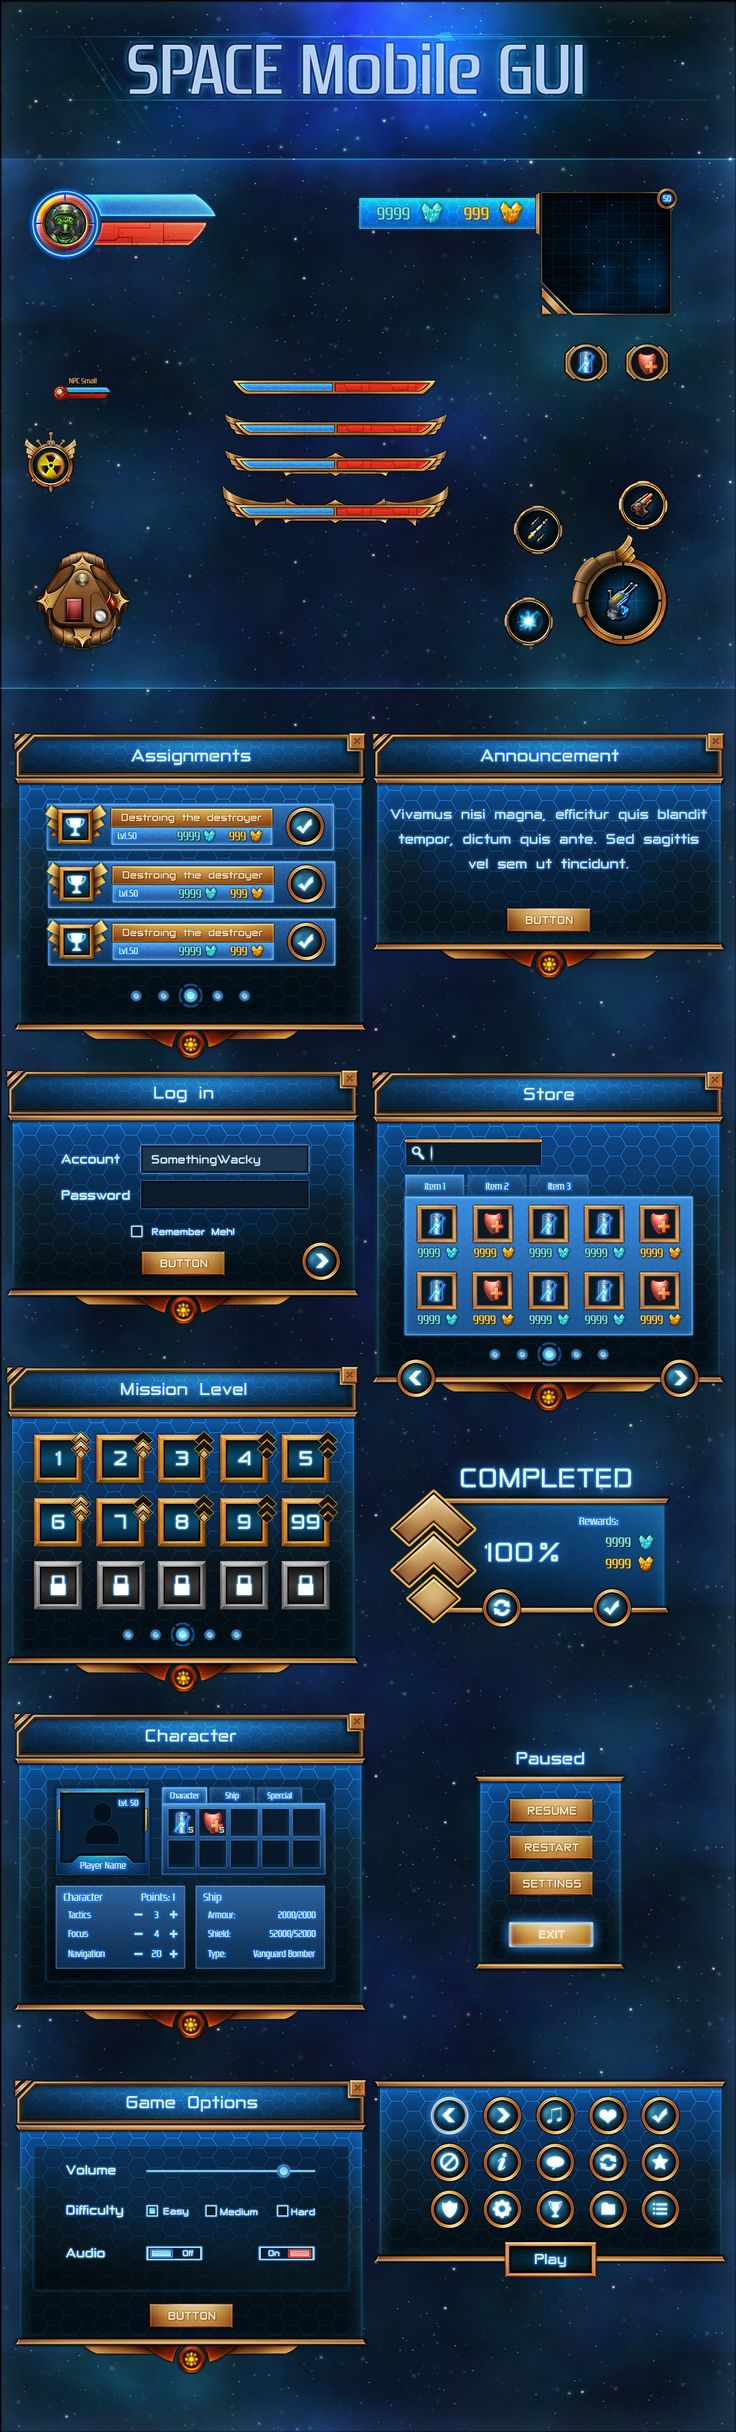 Space Mobile GUI by VengeanceMK1.deviantart.com on @DeviantArt